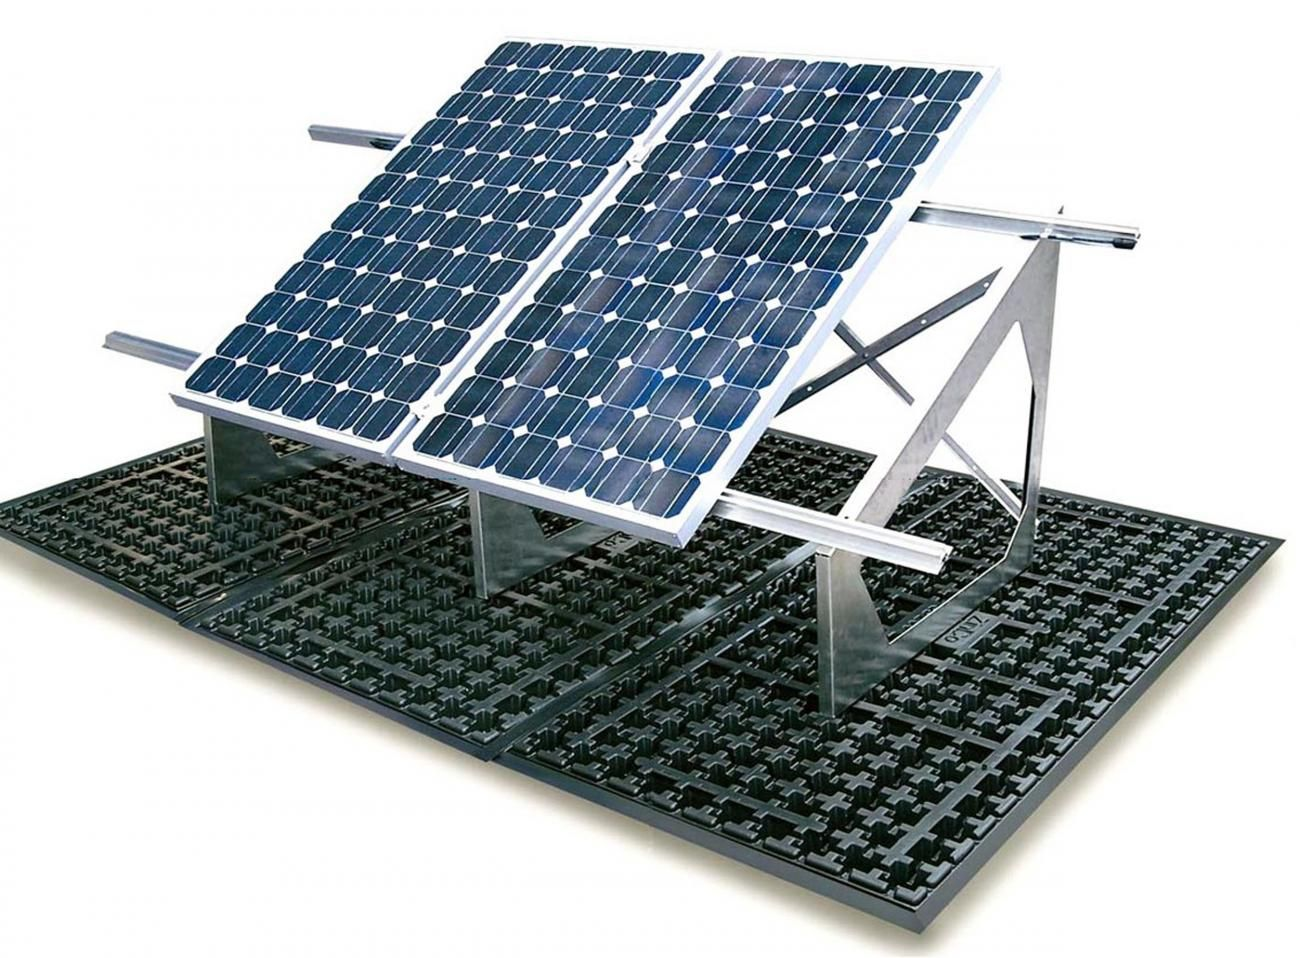 Extensive Ballast Distribution Achieved With The Zinco Solar Base Sb With Solar Base Frame For Installing The Sol Green Roof Roof Solar Panel Green Roof System